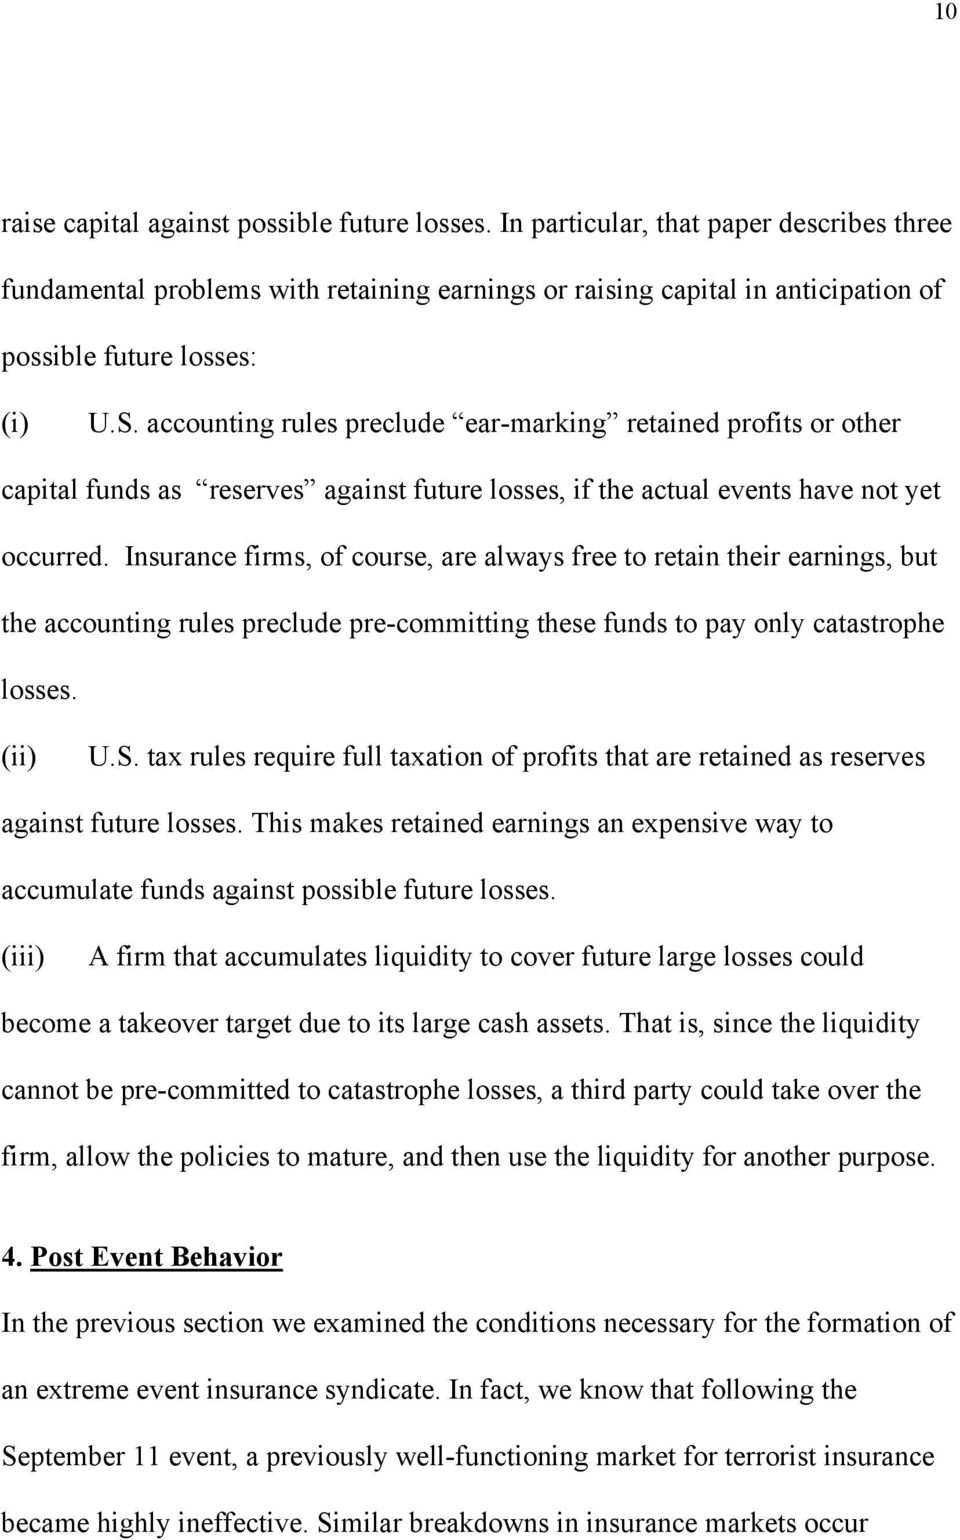 accounting rules preclude ear-marking retained profits or other capital funds as reserves against future losses, if the actual events have not yet occurred.